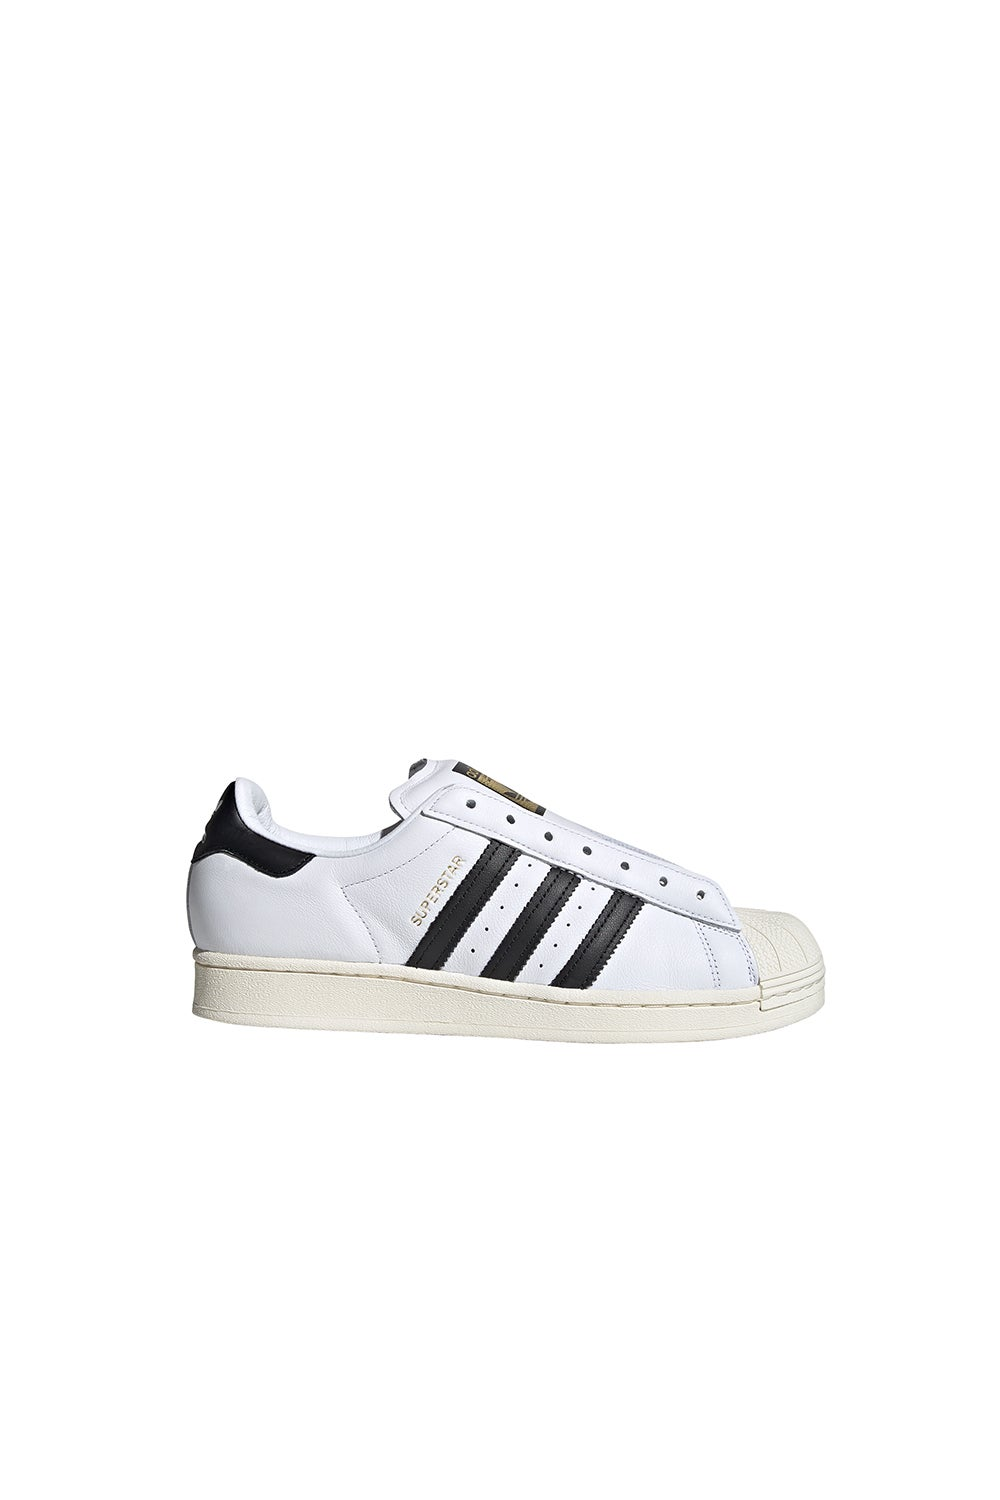 adidas Superstar Laceless Cloud White